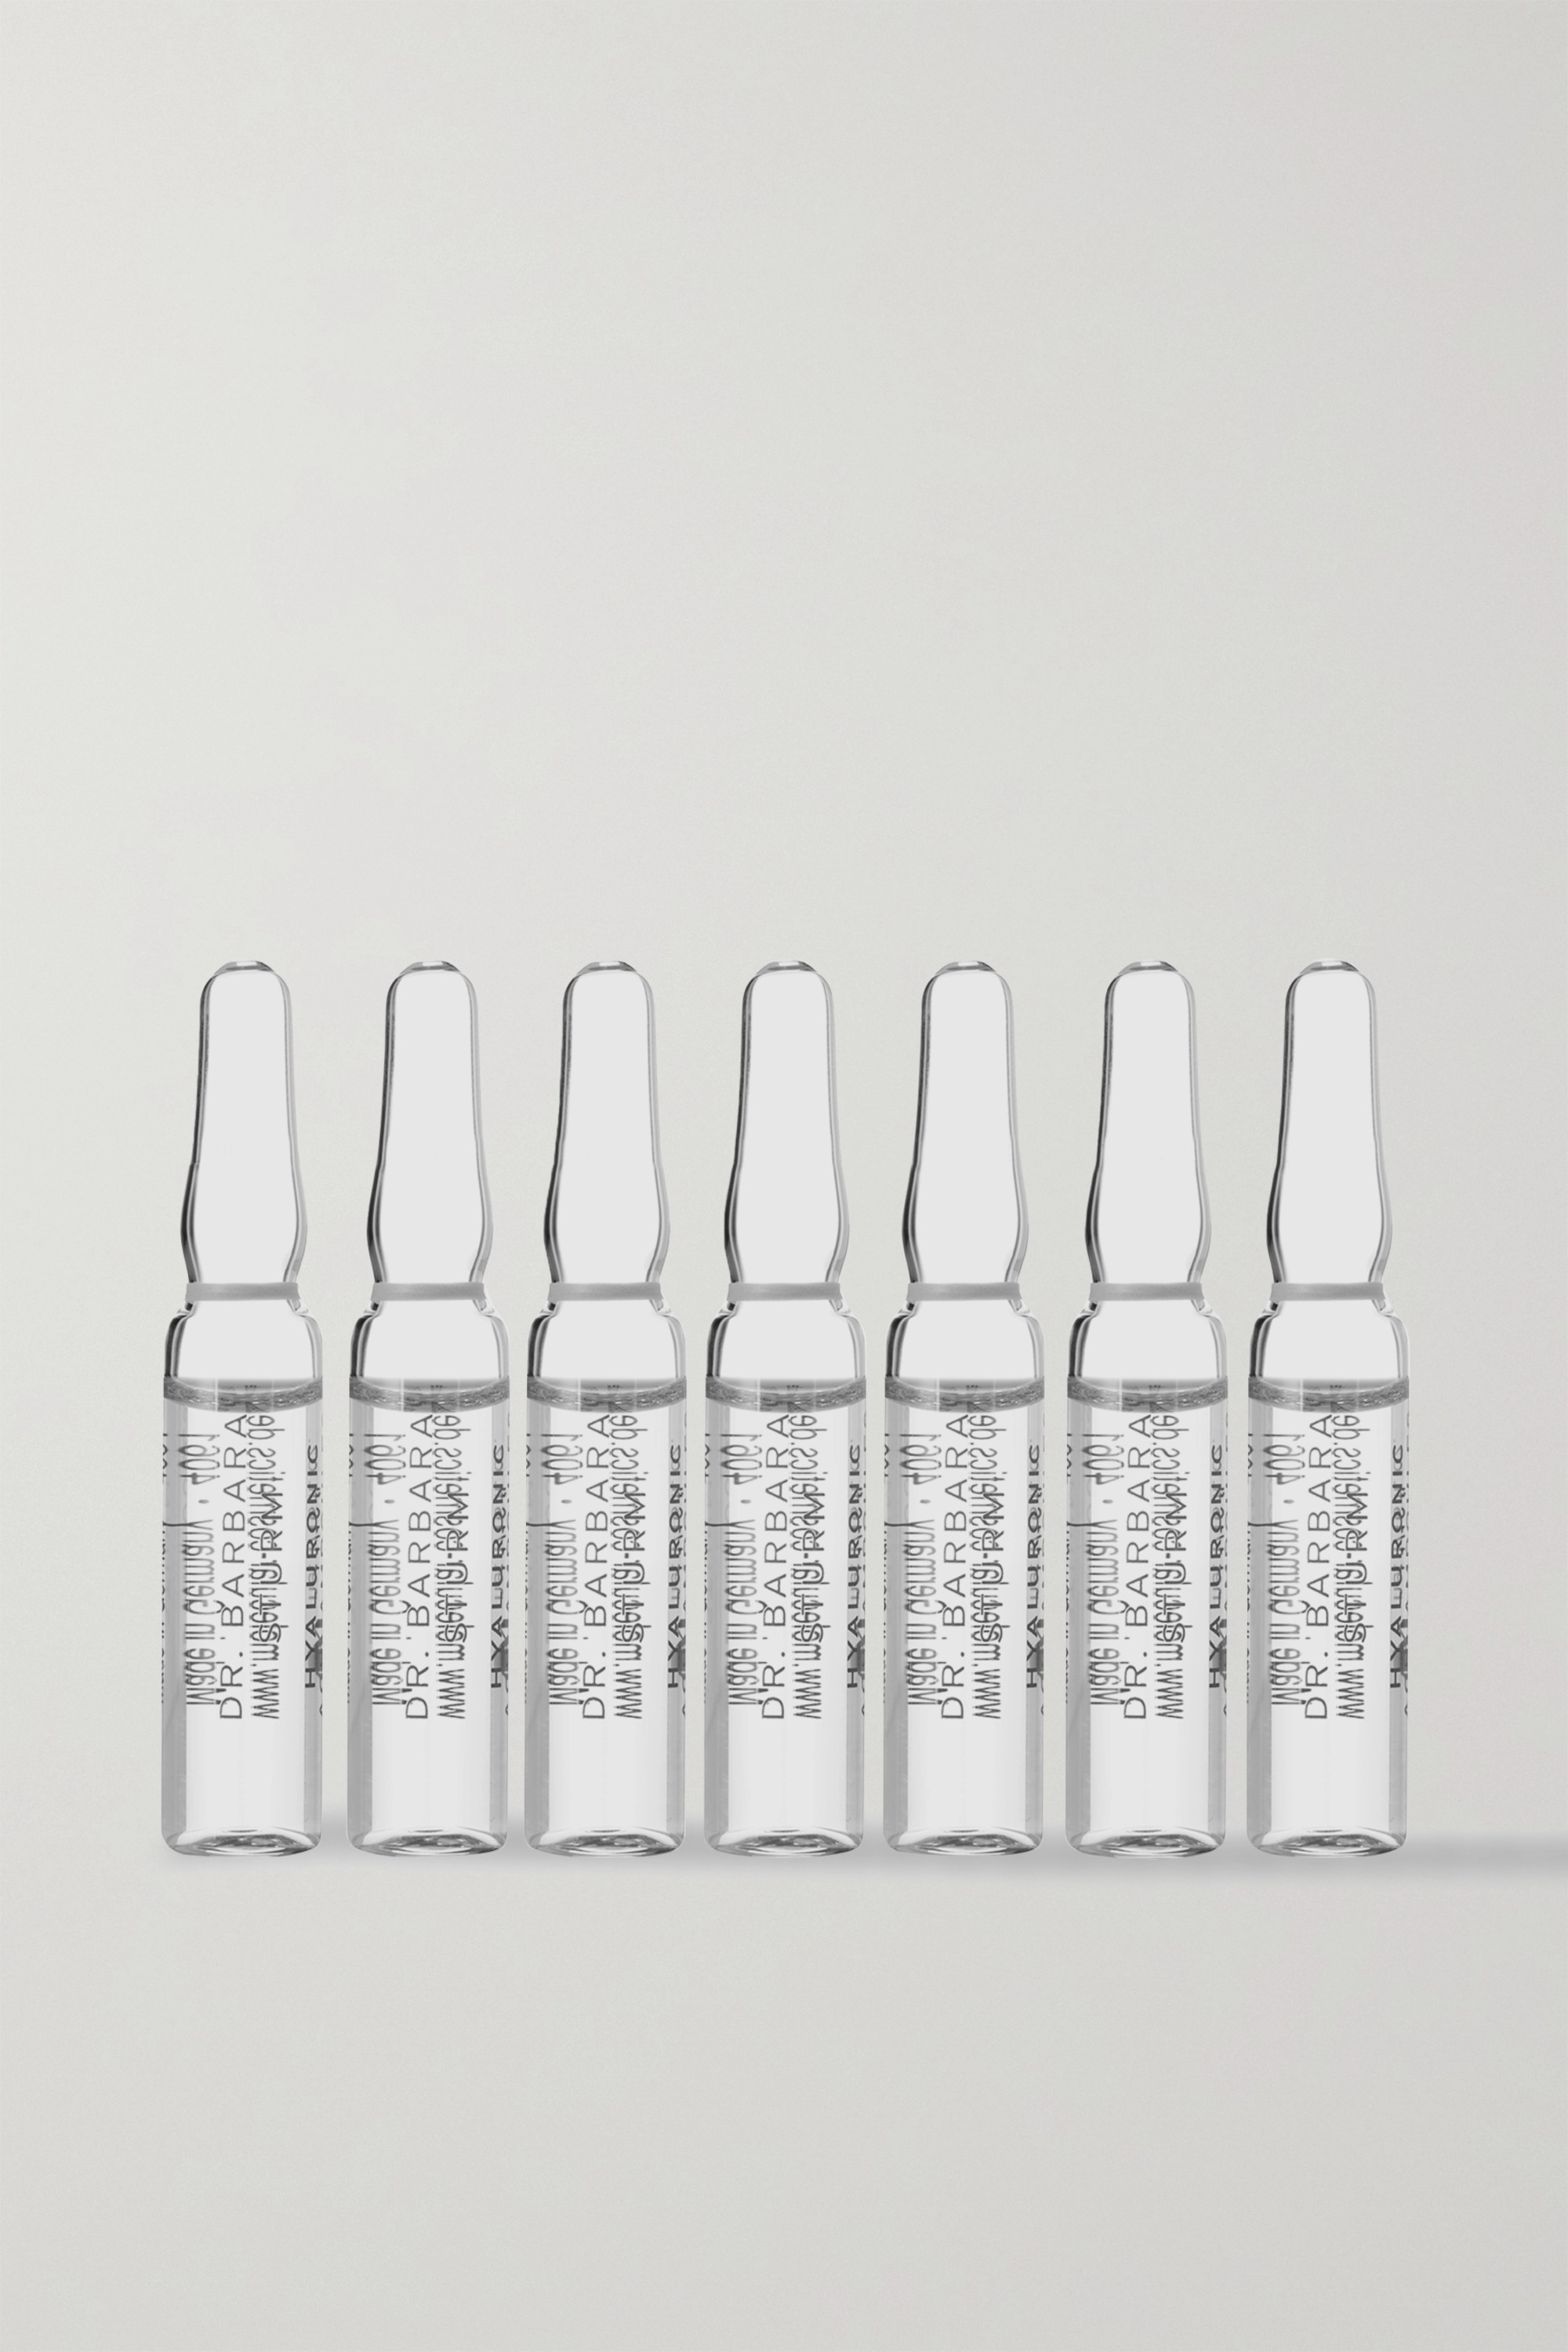 DR. BARBARA STURM Hyaluronic Ampoules, 7 x 2ml